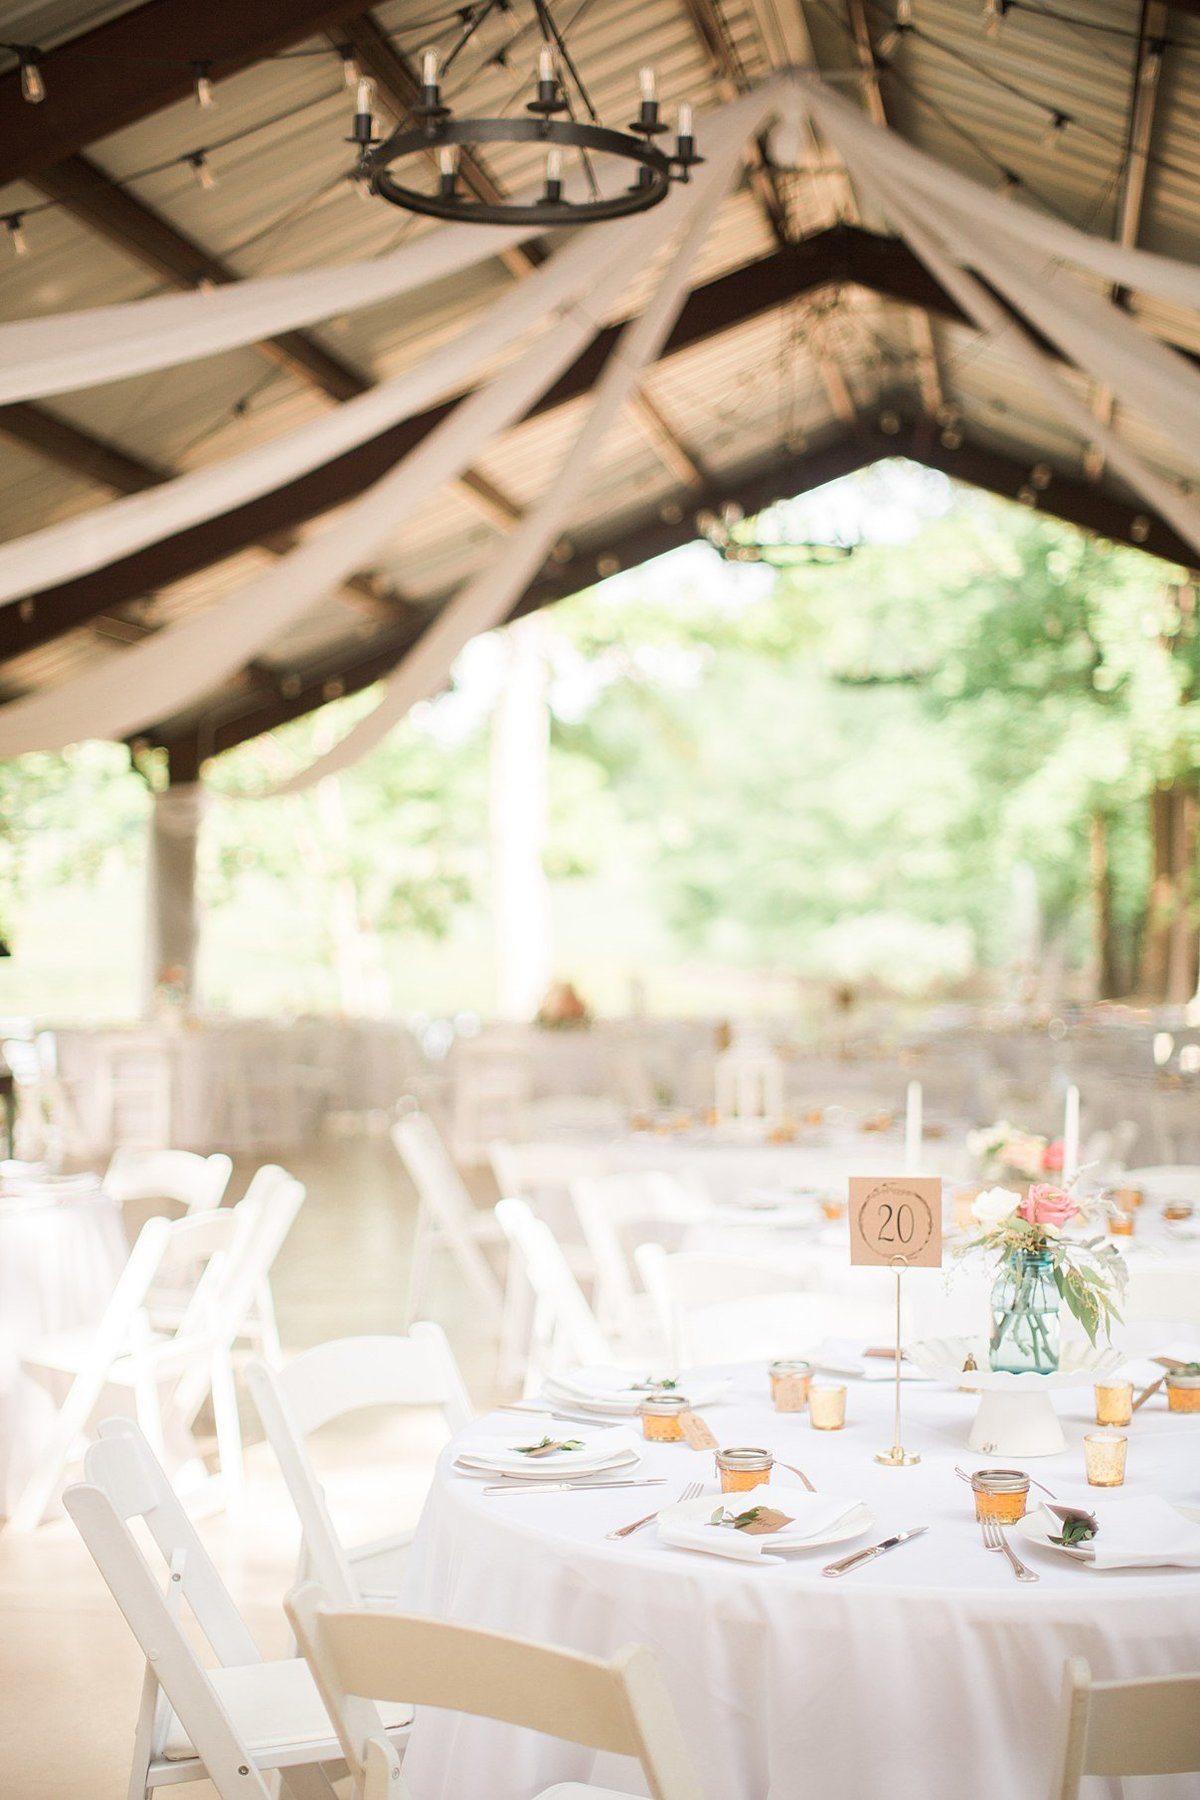 L & J Chapel in the Woods Raleigh NC Rustic Vintage Country Wedding Andrew & Tianna Photography-312